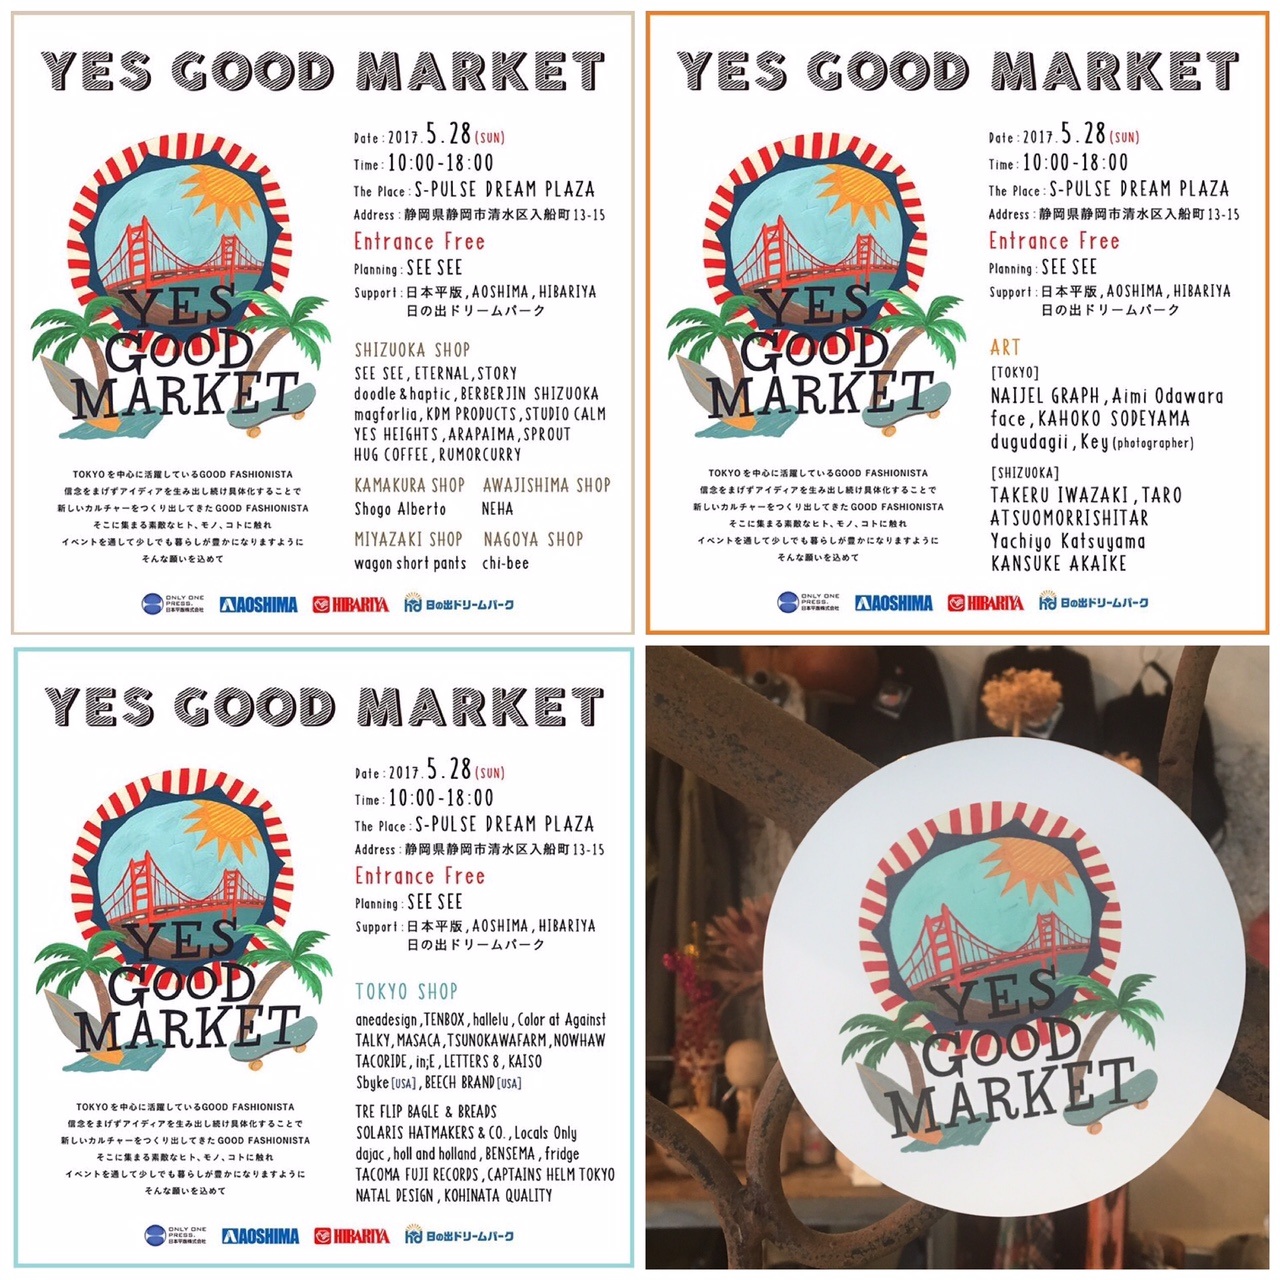 YES GOOD MARKET 5/ 28 sunday